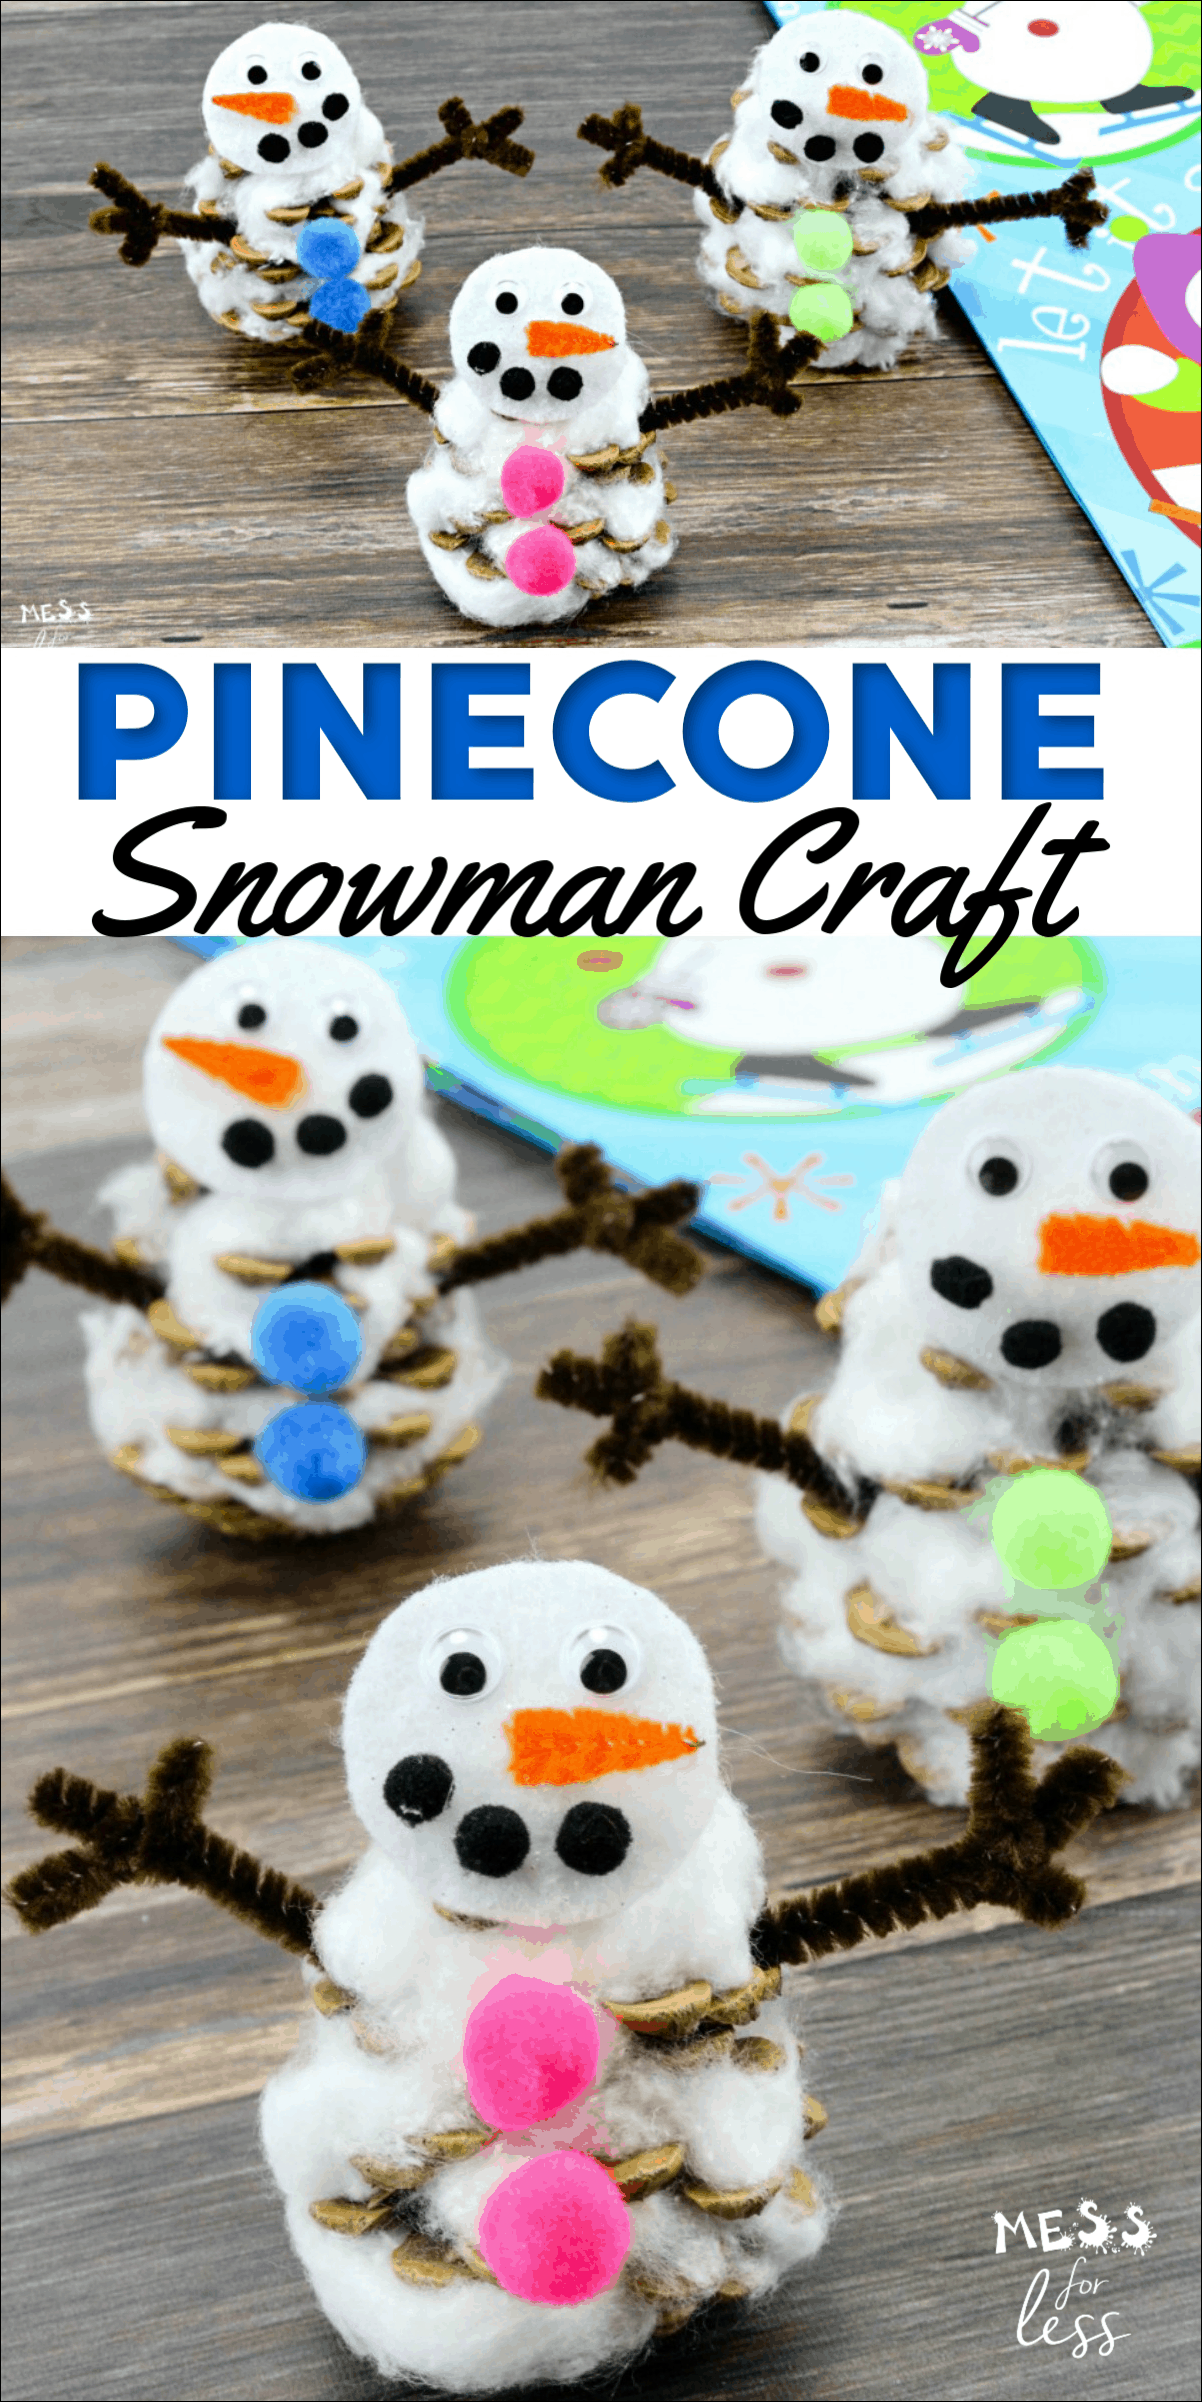 This pinecone snowman craft is easy to make, and can be used in so many different ways. Check out how easy it is to transform an ordinary pinecone into an adorable winter snowman. #snowmancraft #wintercraft #kidscrafts